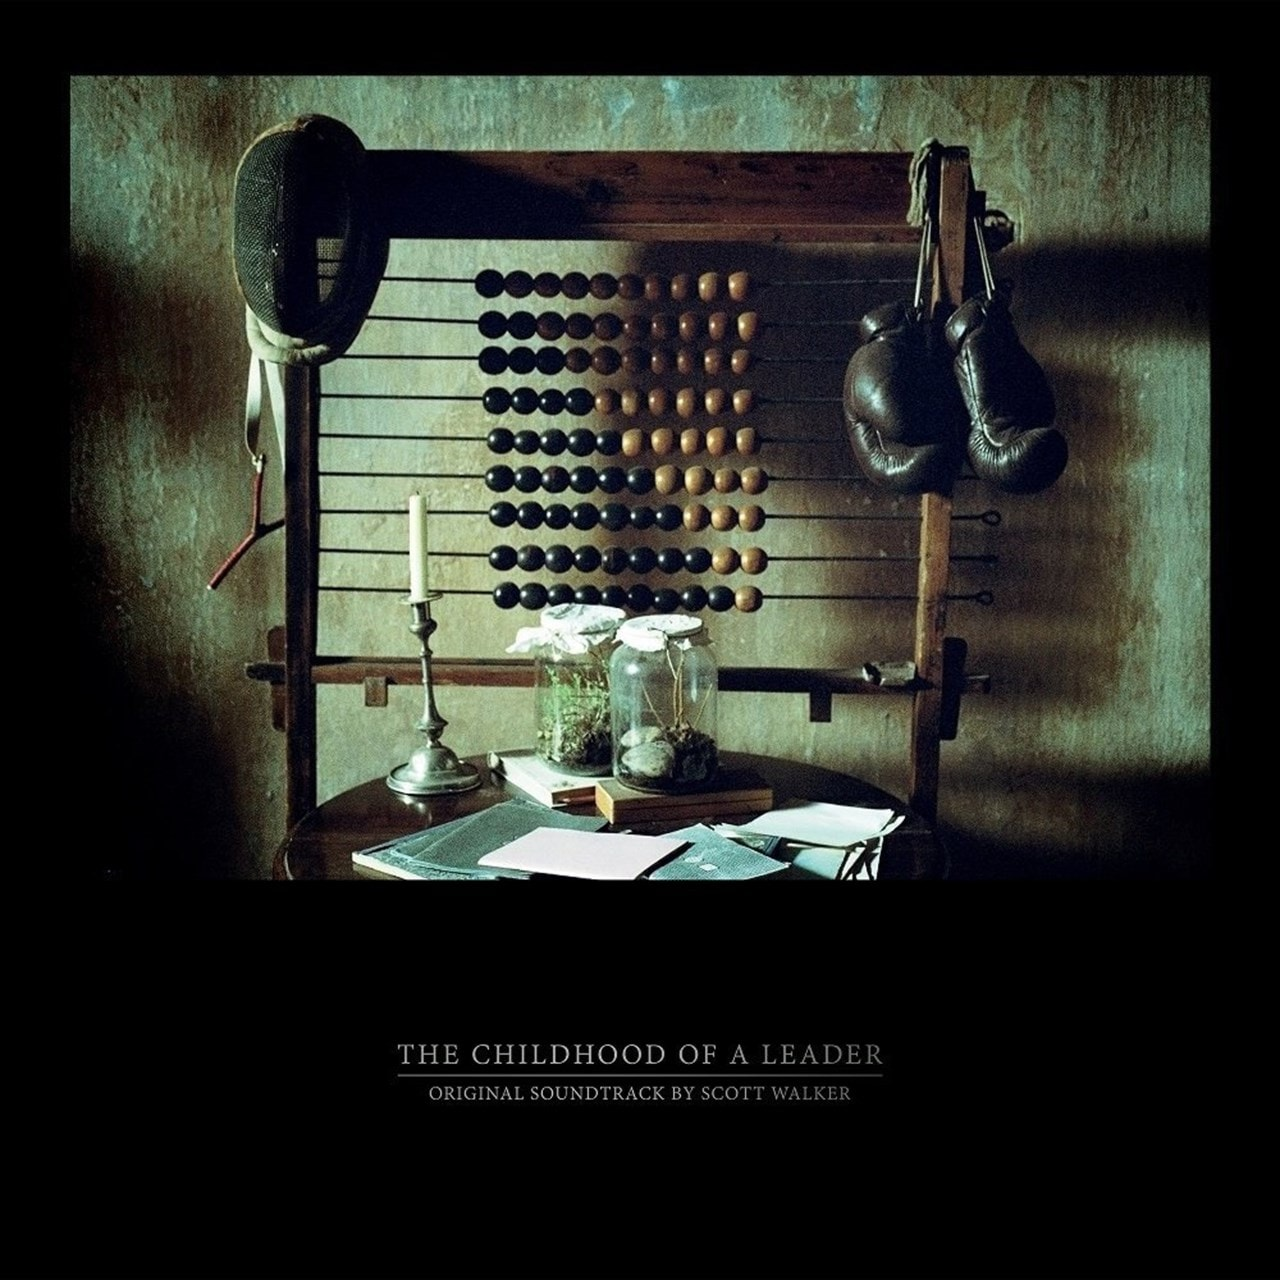 The Childhood of a Leader - 1